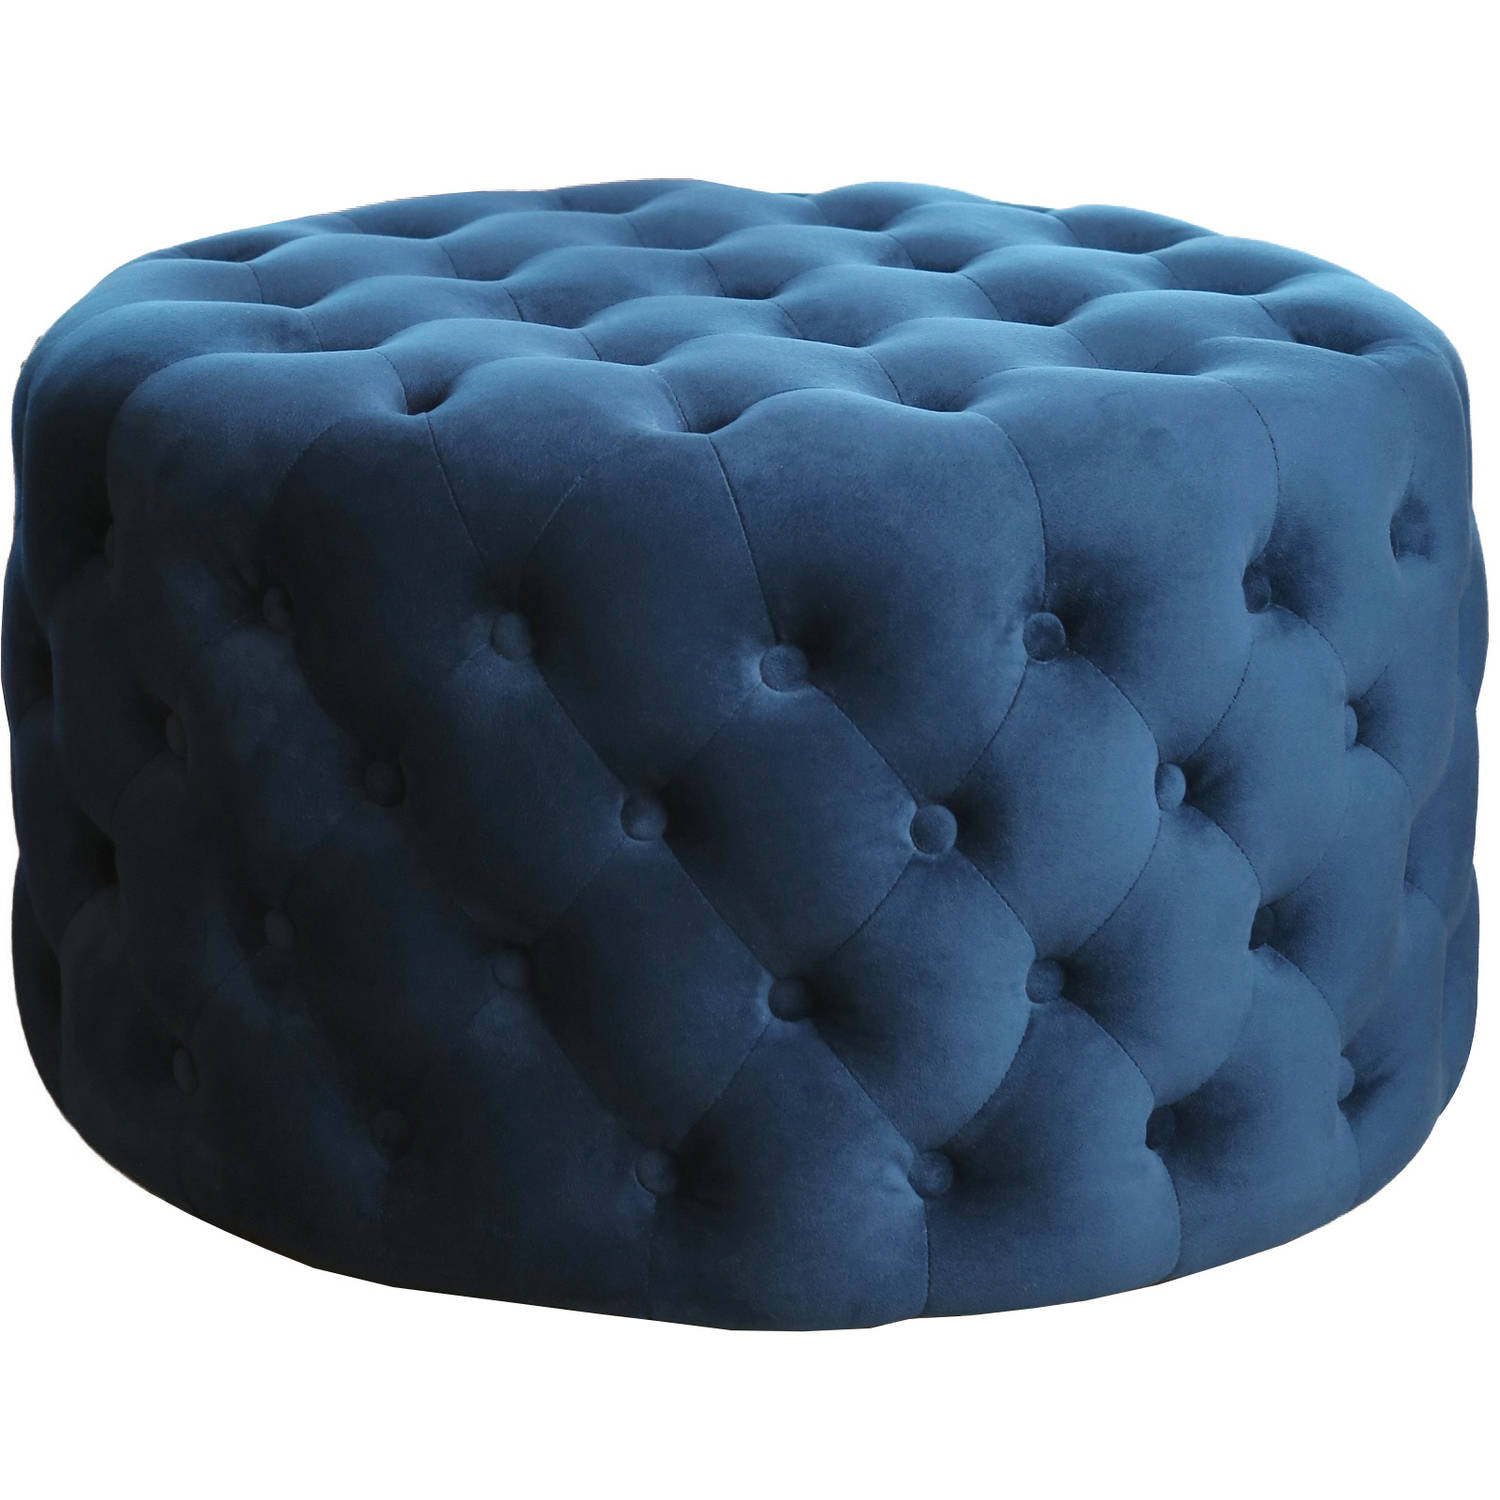 Devon & Claire Charleston Tufted Round Velvet Ottoman, Multiple Colors